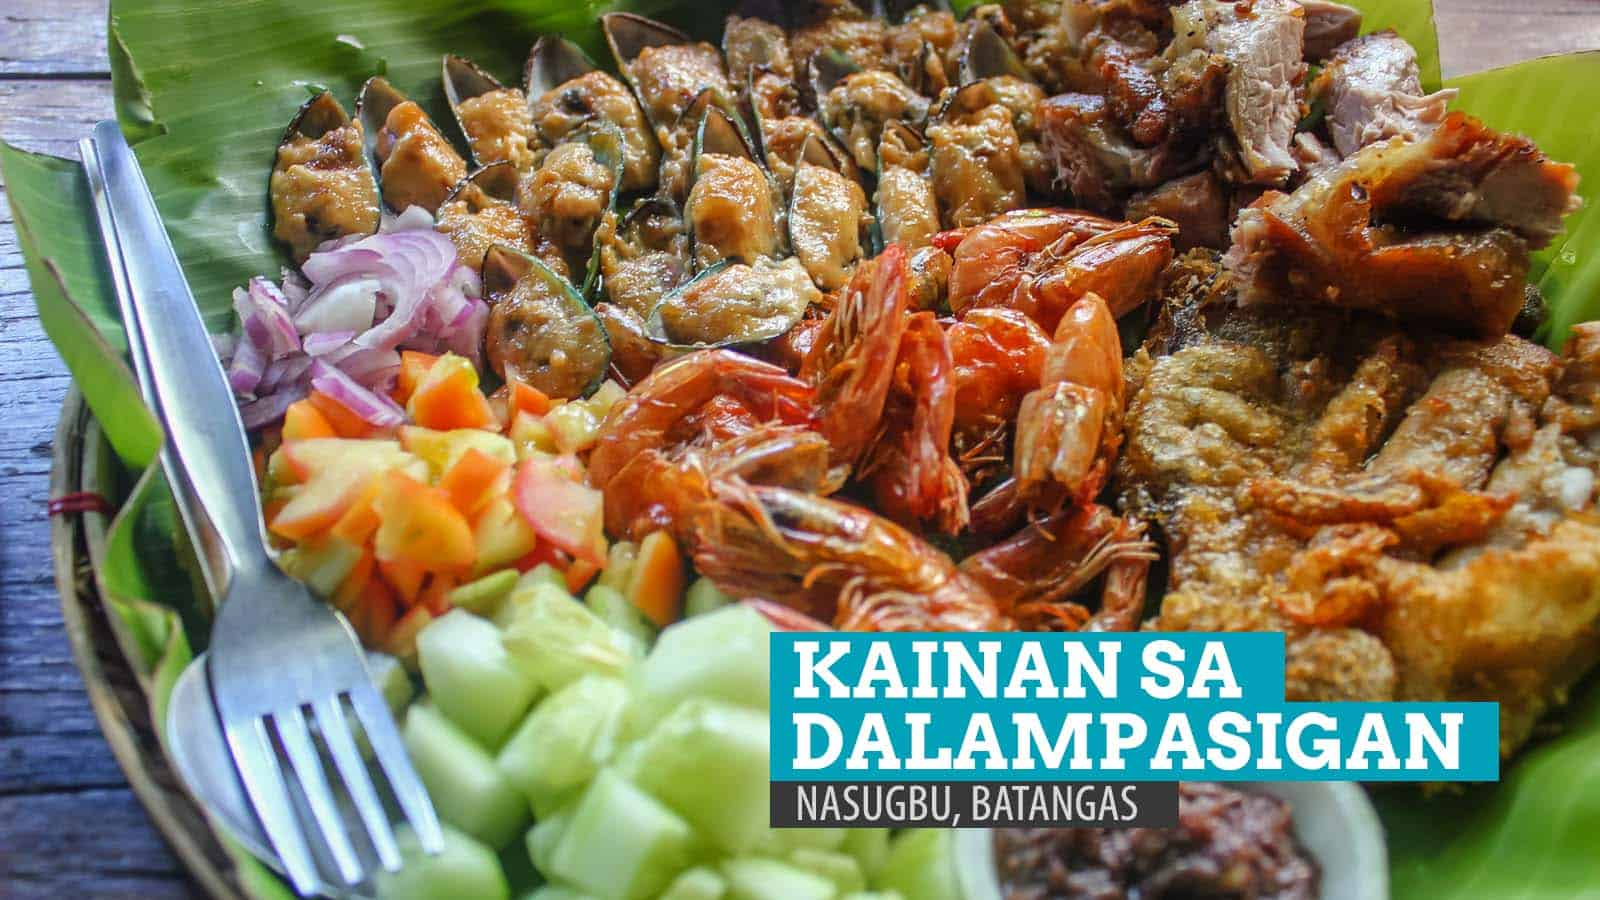 KAINAN SA DALAMPASIGAN: Where to Eat in Nasugbu, Batangas